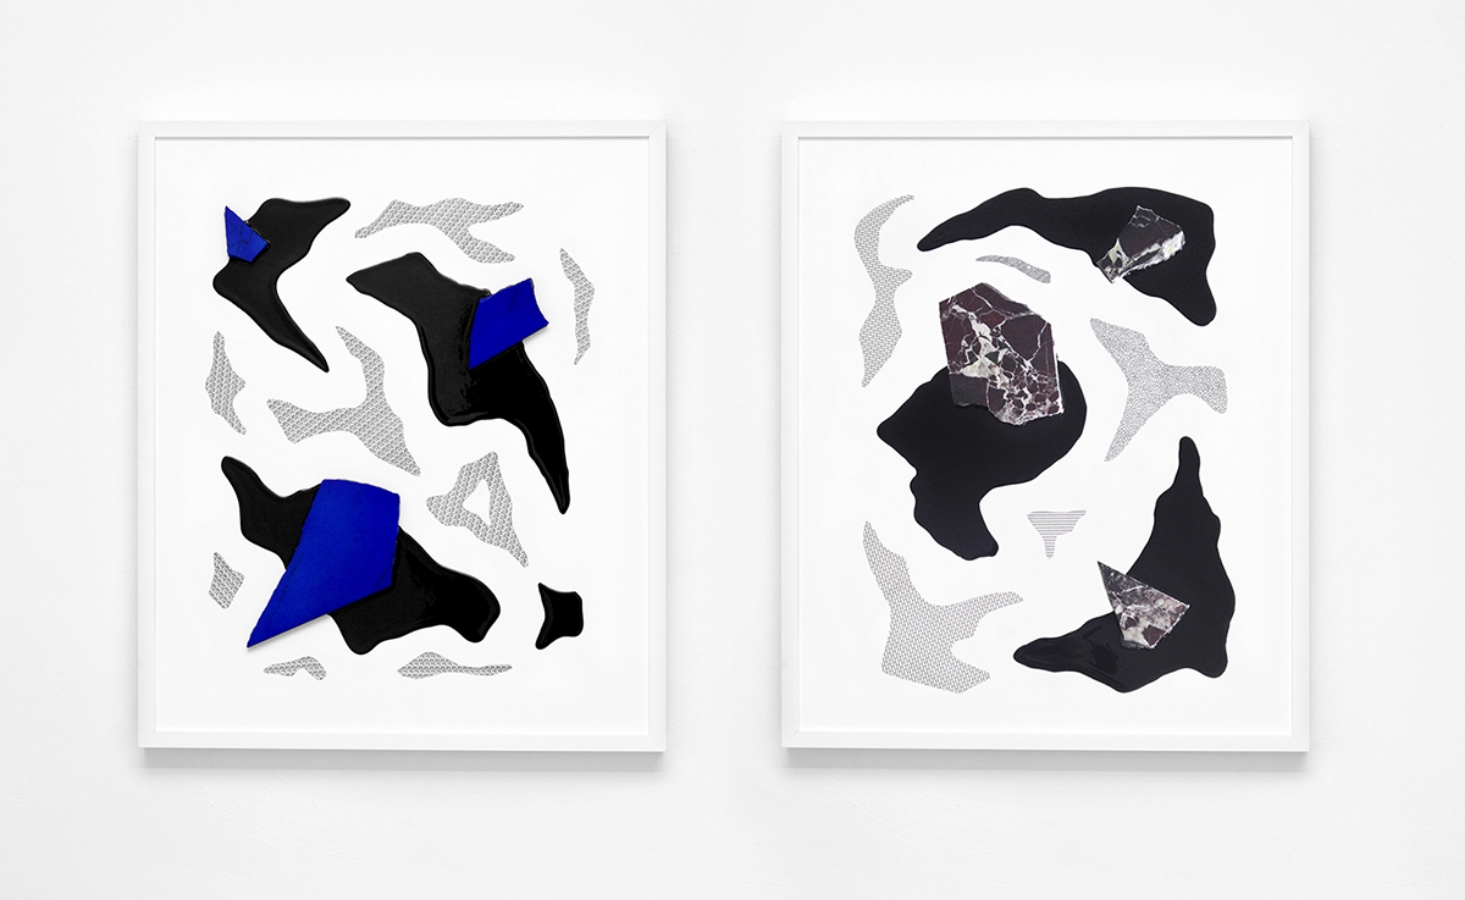 NOTIONS OF PLACES (SERIE 02, N.01 AND N.02),  Industrial acrylic paint, painted marble and old letrasets decals on wood board, 2014 @ Claude Eigan